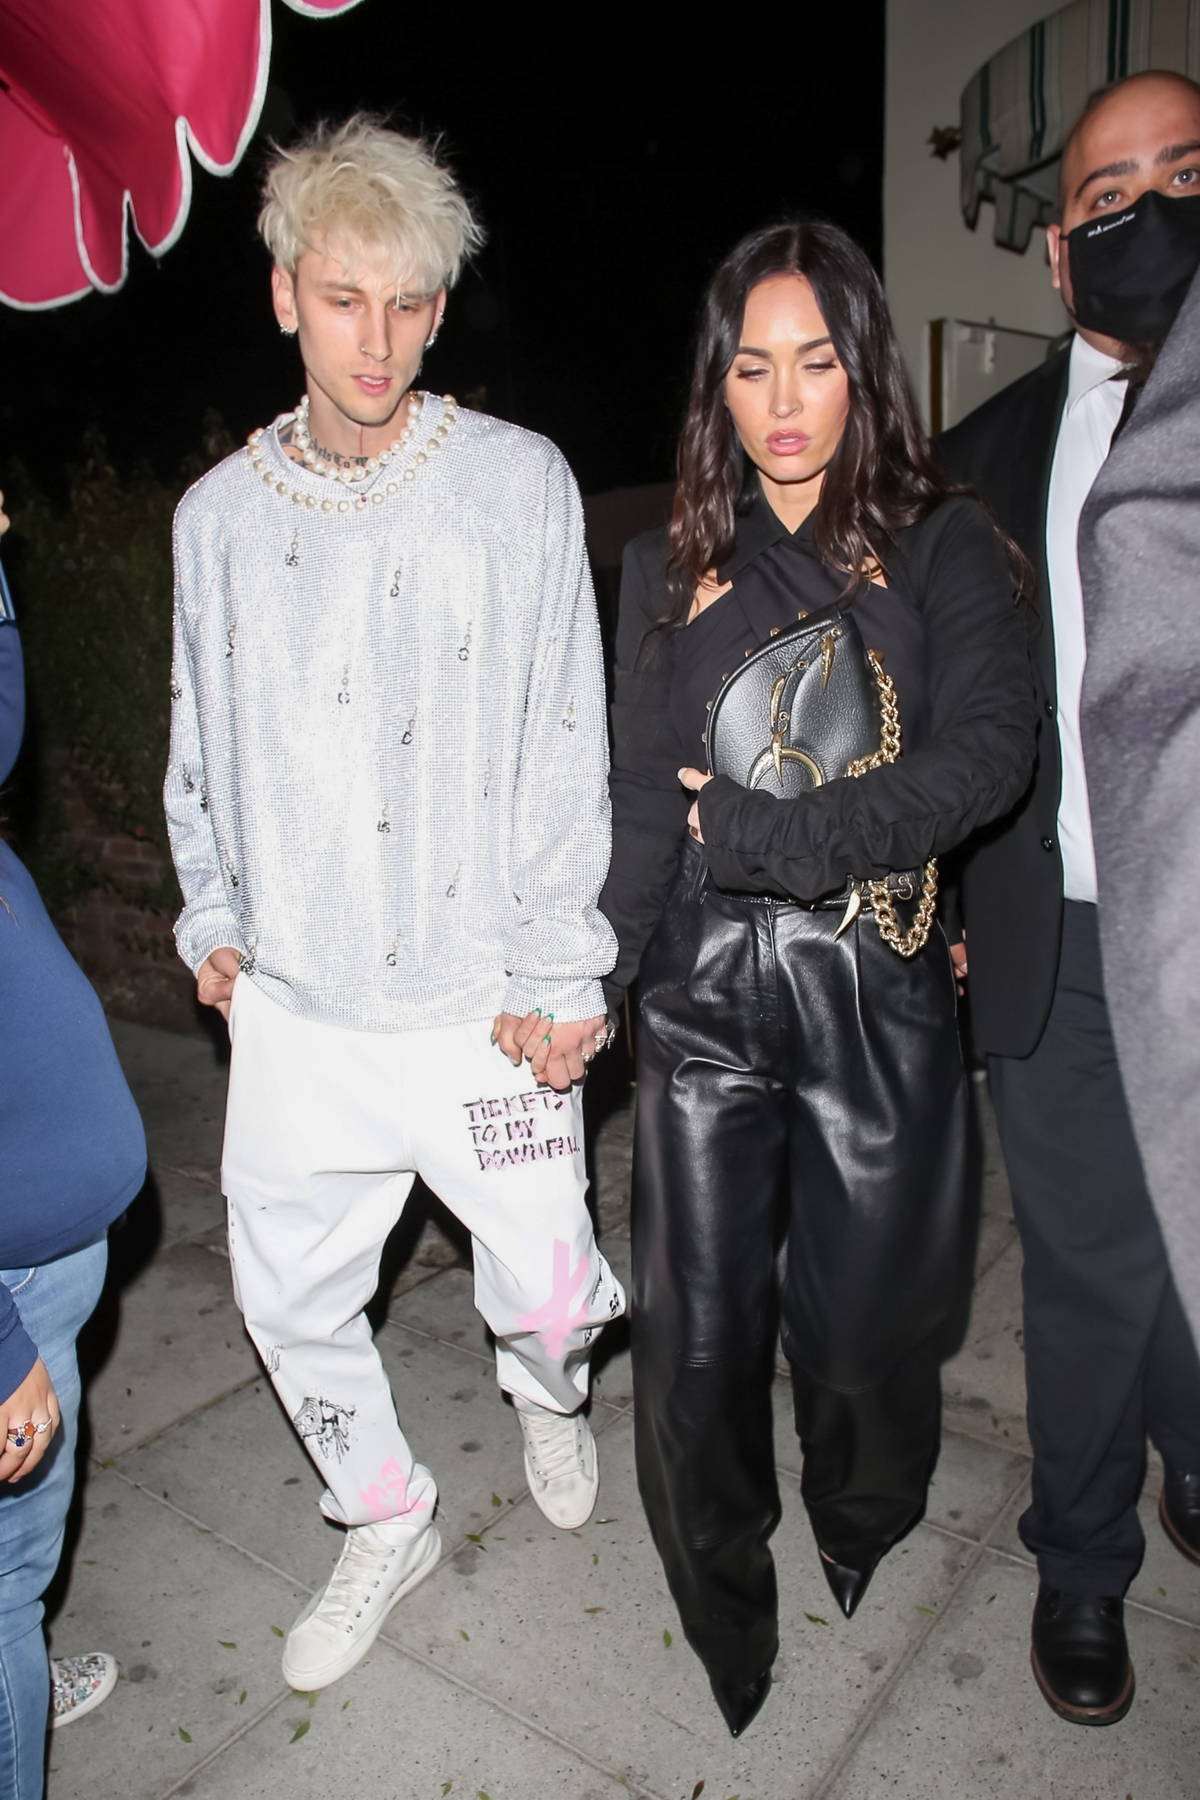 Megan Fox and Machine Gun Kelly hold hands as they leave after a night out at Delilah in Los Angeles